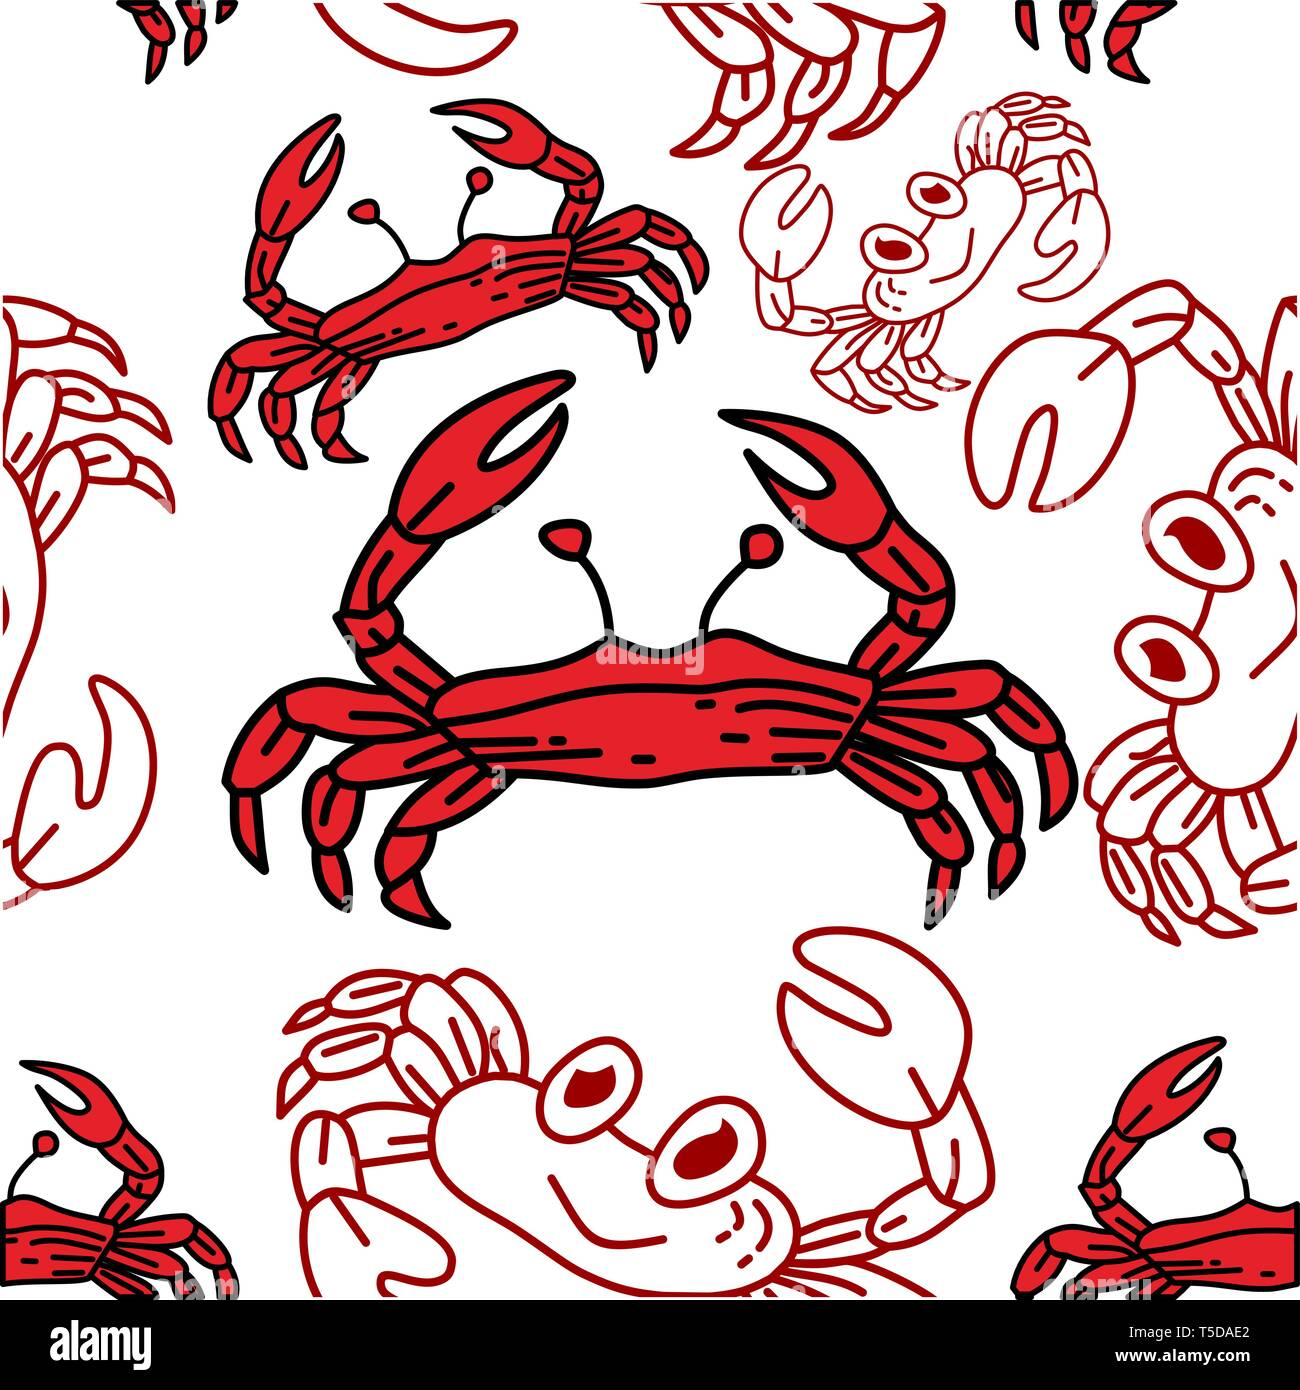 Red Claw Crab Stock Vector Images Page 3 Alamy